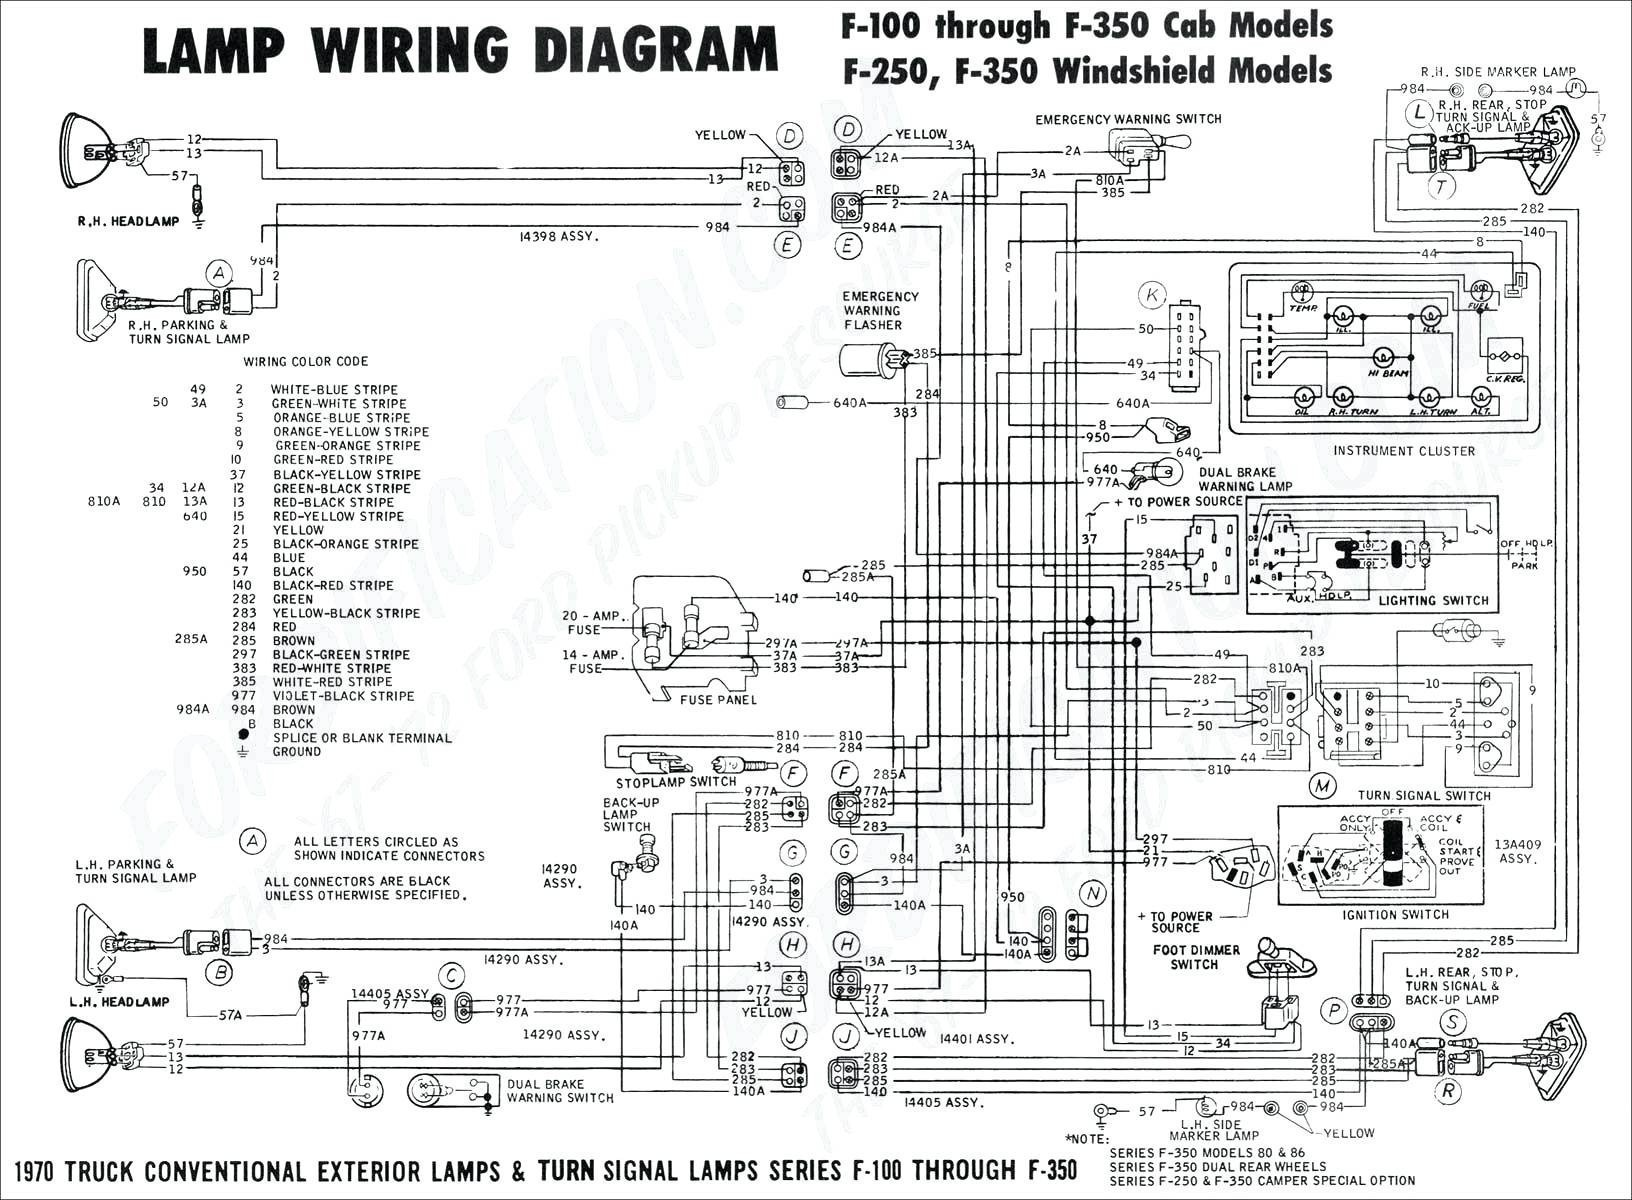 Car Ignition Switch Wiring Diagram Nissan Ignition Switch Wiring Diagram Valid 1995 ford F150 Ignition Of Car Ignition Switch Wiring Diagram Wiring Diagram Gm Ignition Switch Fresh Car Ignition System Wiring